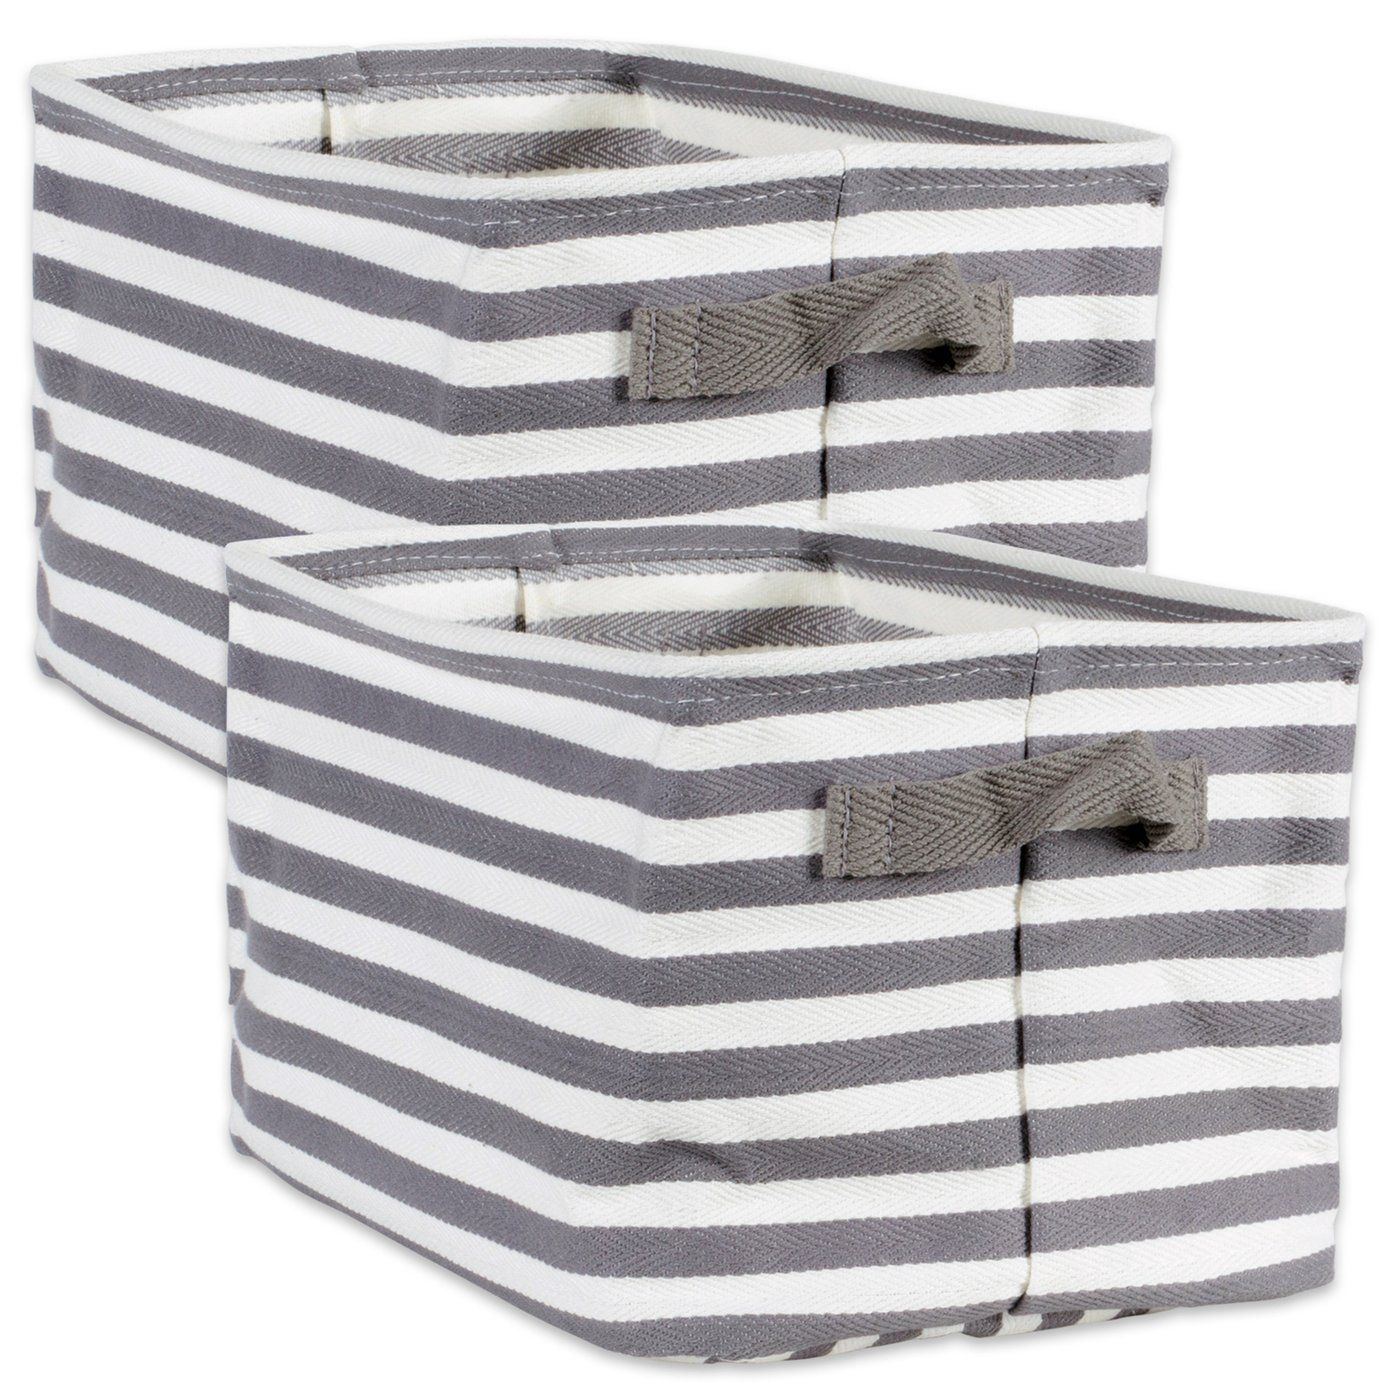 Coated Herringbone Woven Cotton Laundry Bin Stripe Gray Rectangle Medium, Set/2 - Shop Basket - DARRA HOME